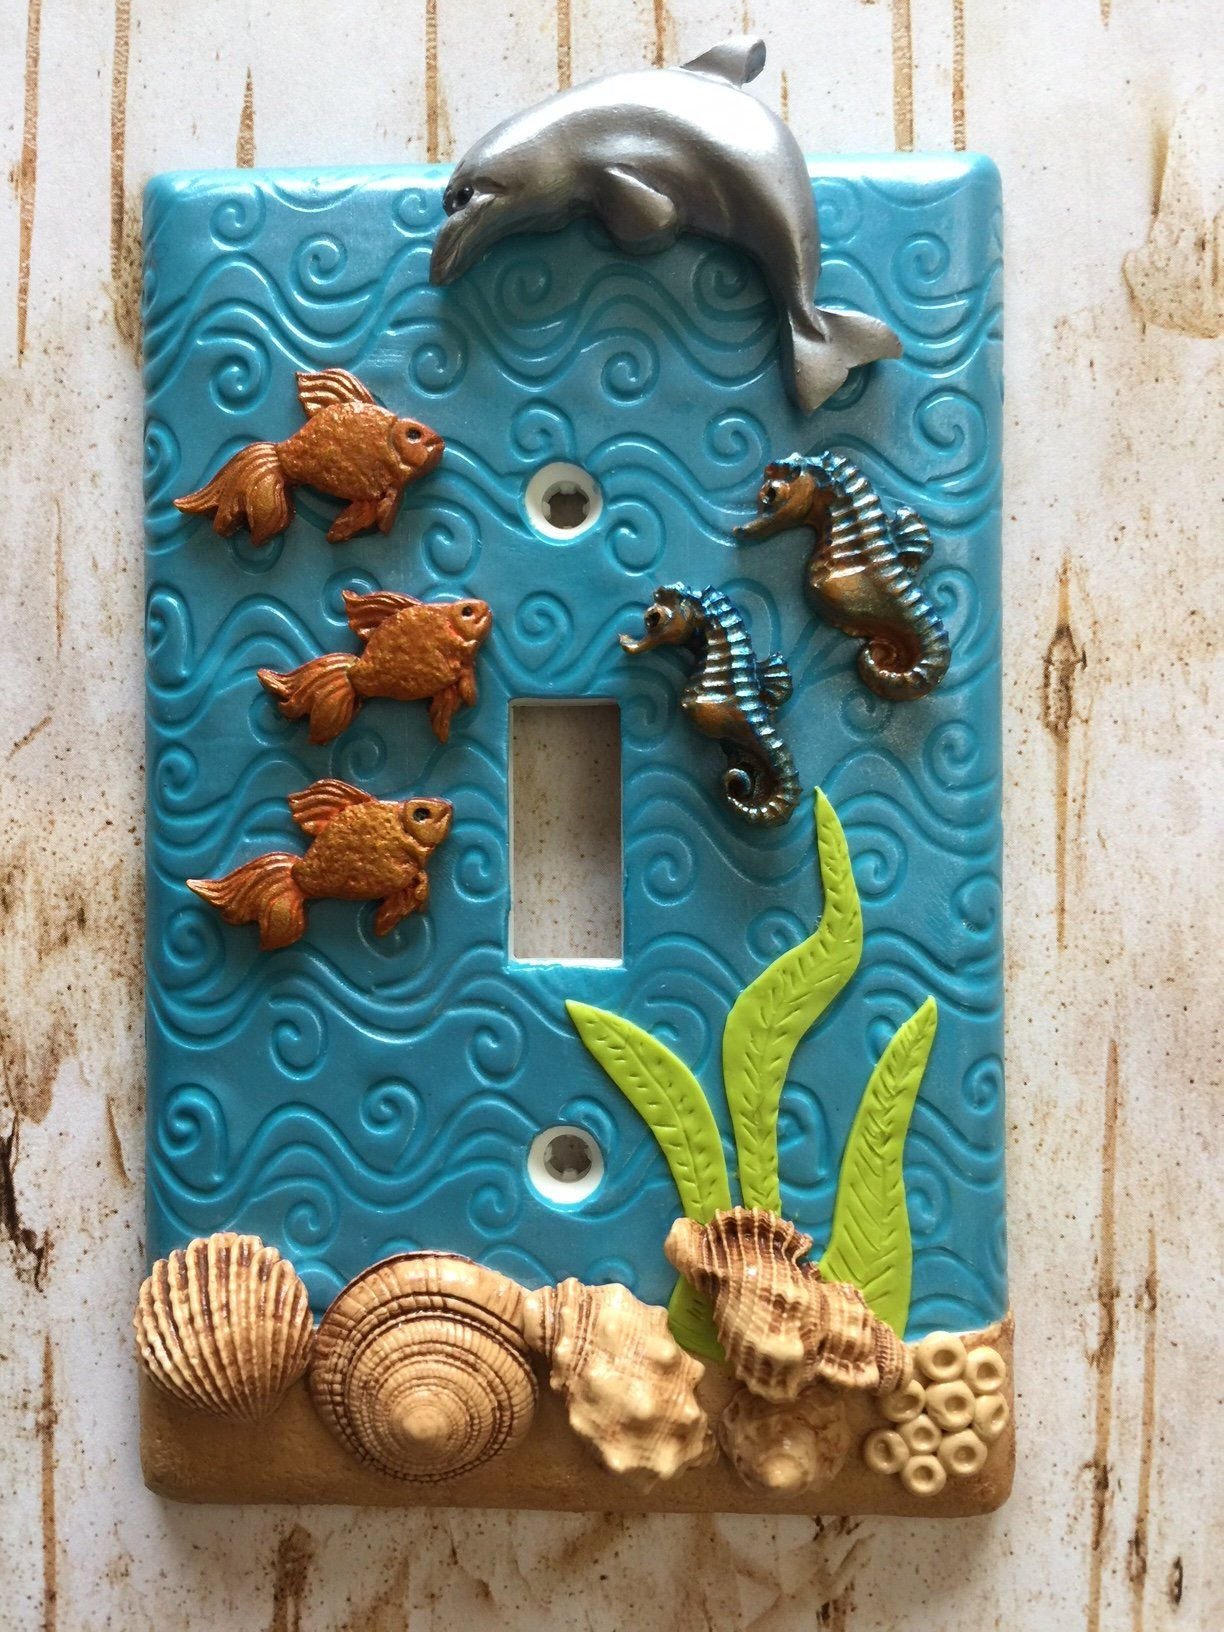 Handmade Light Switch Plate or Outlet Cover Sculpture 3D